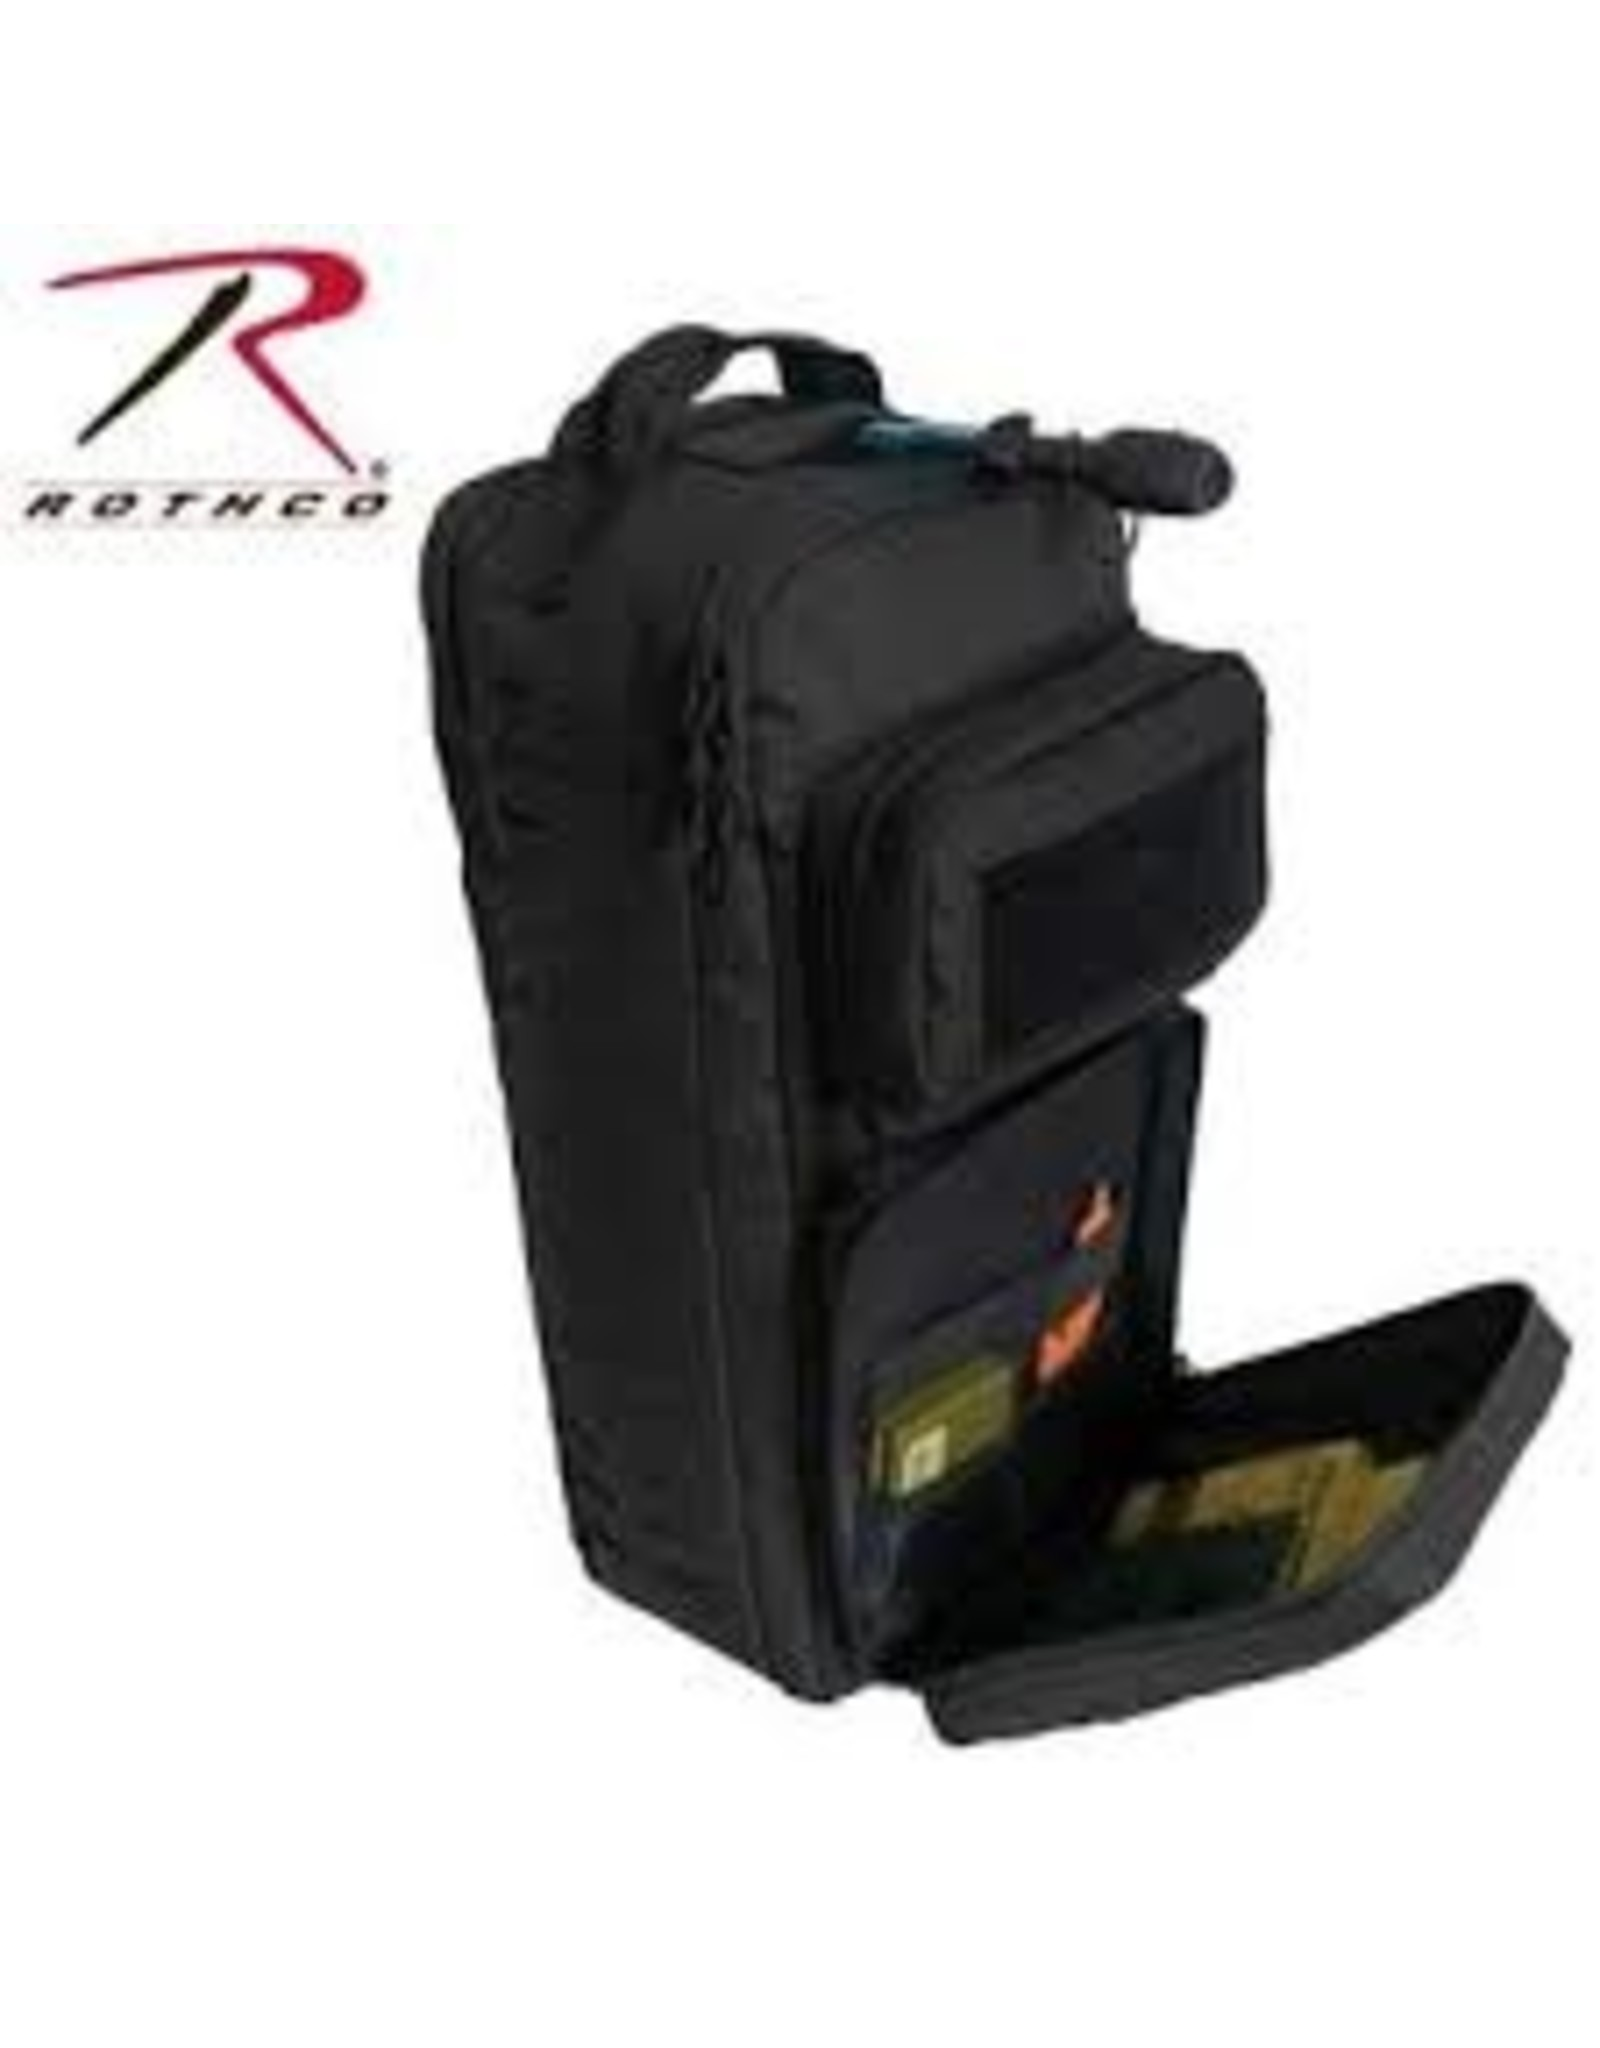 ROTHCO Rothco Tactical Single Sling Pack With Laser Cut MOLLE